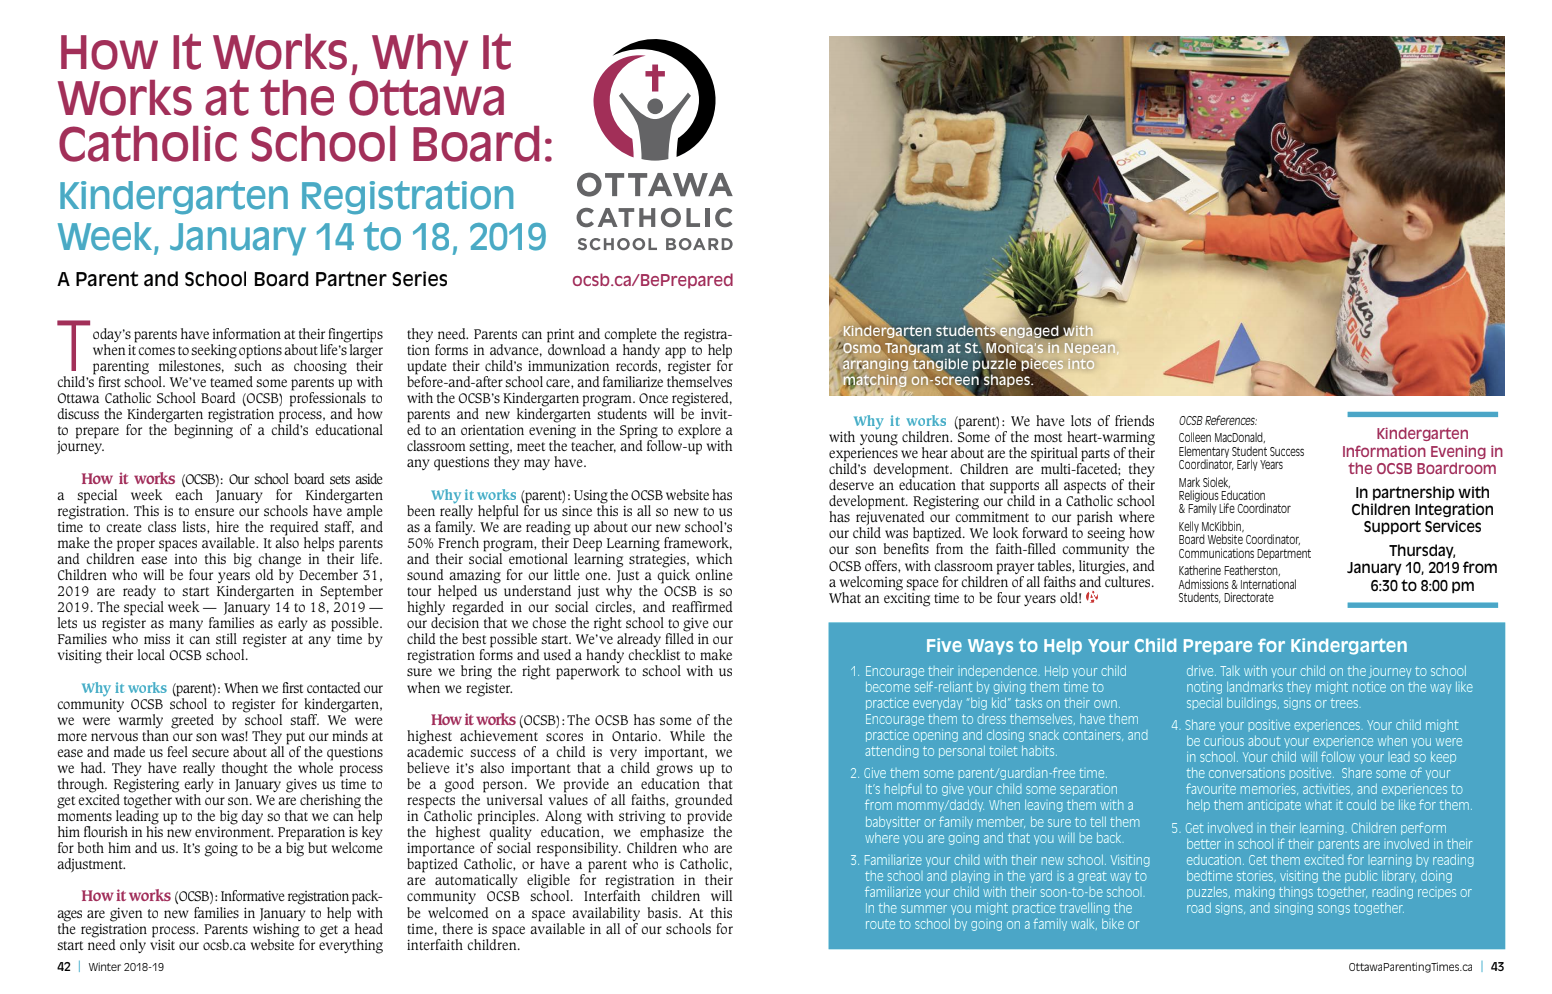 Register your child in an OCSB school